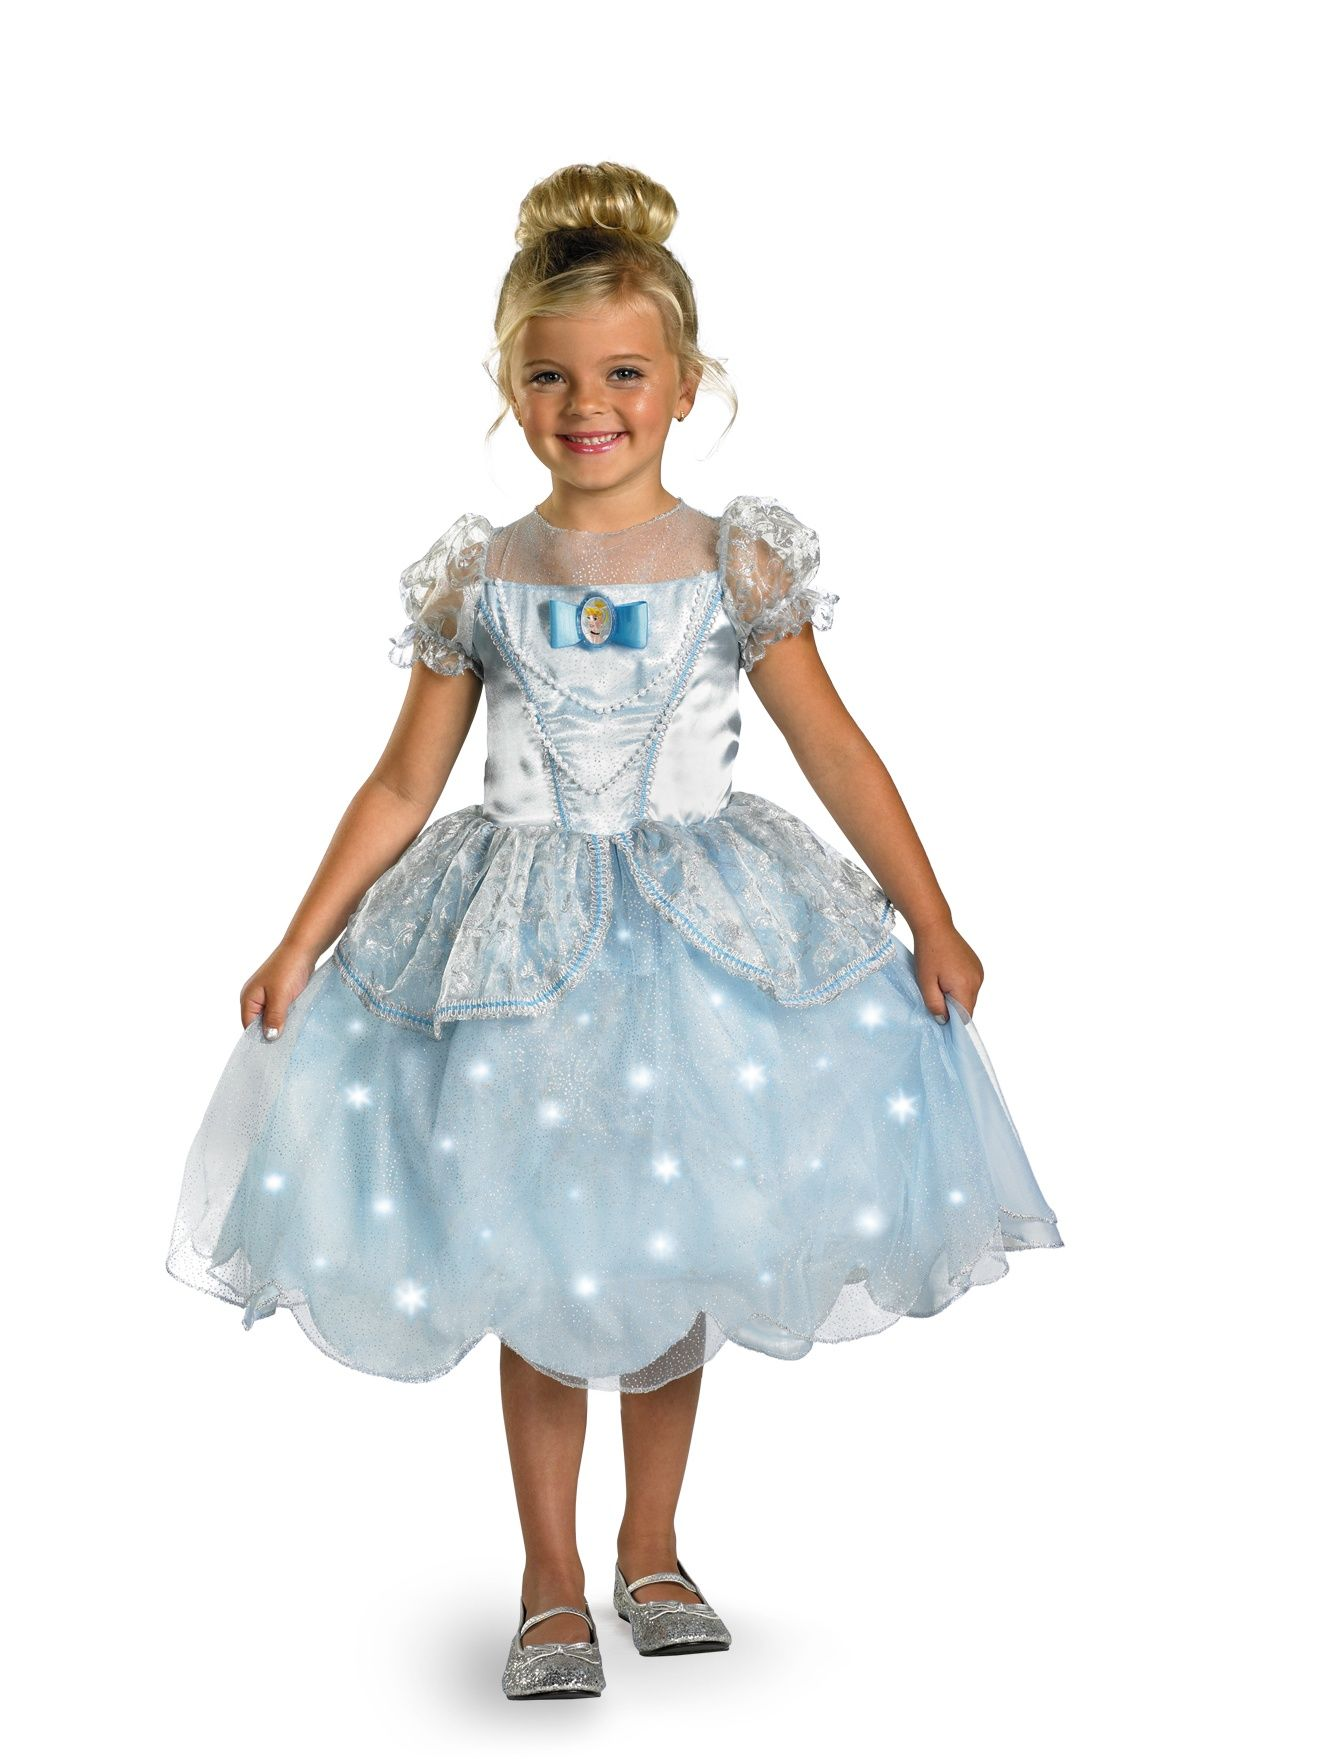 Cinderella Light Up Disney Girl Costume Deluxe | Princess costumes ...